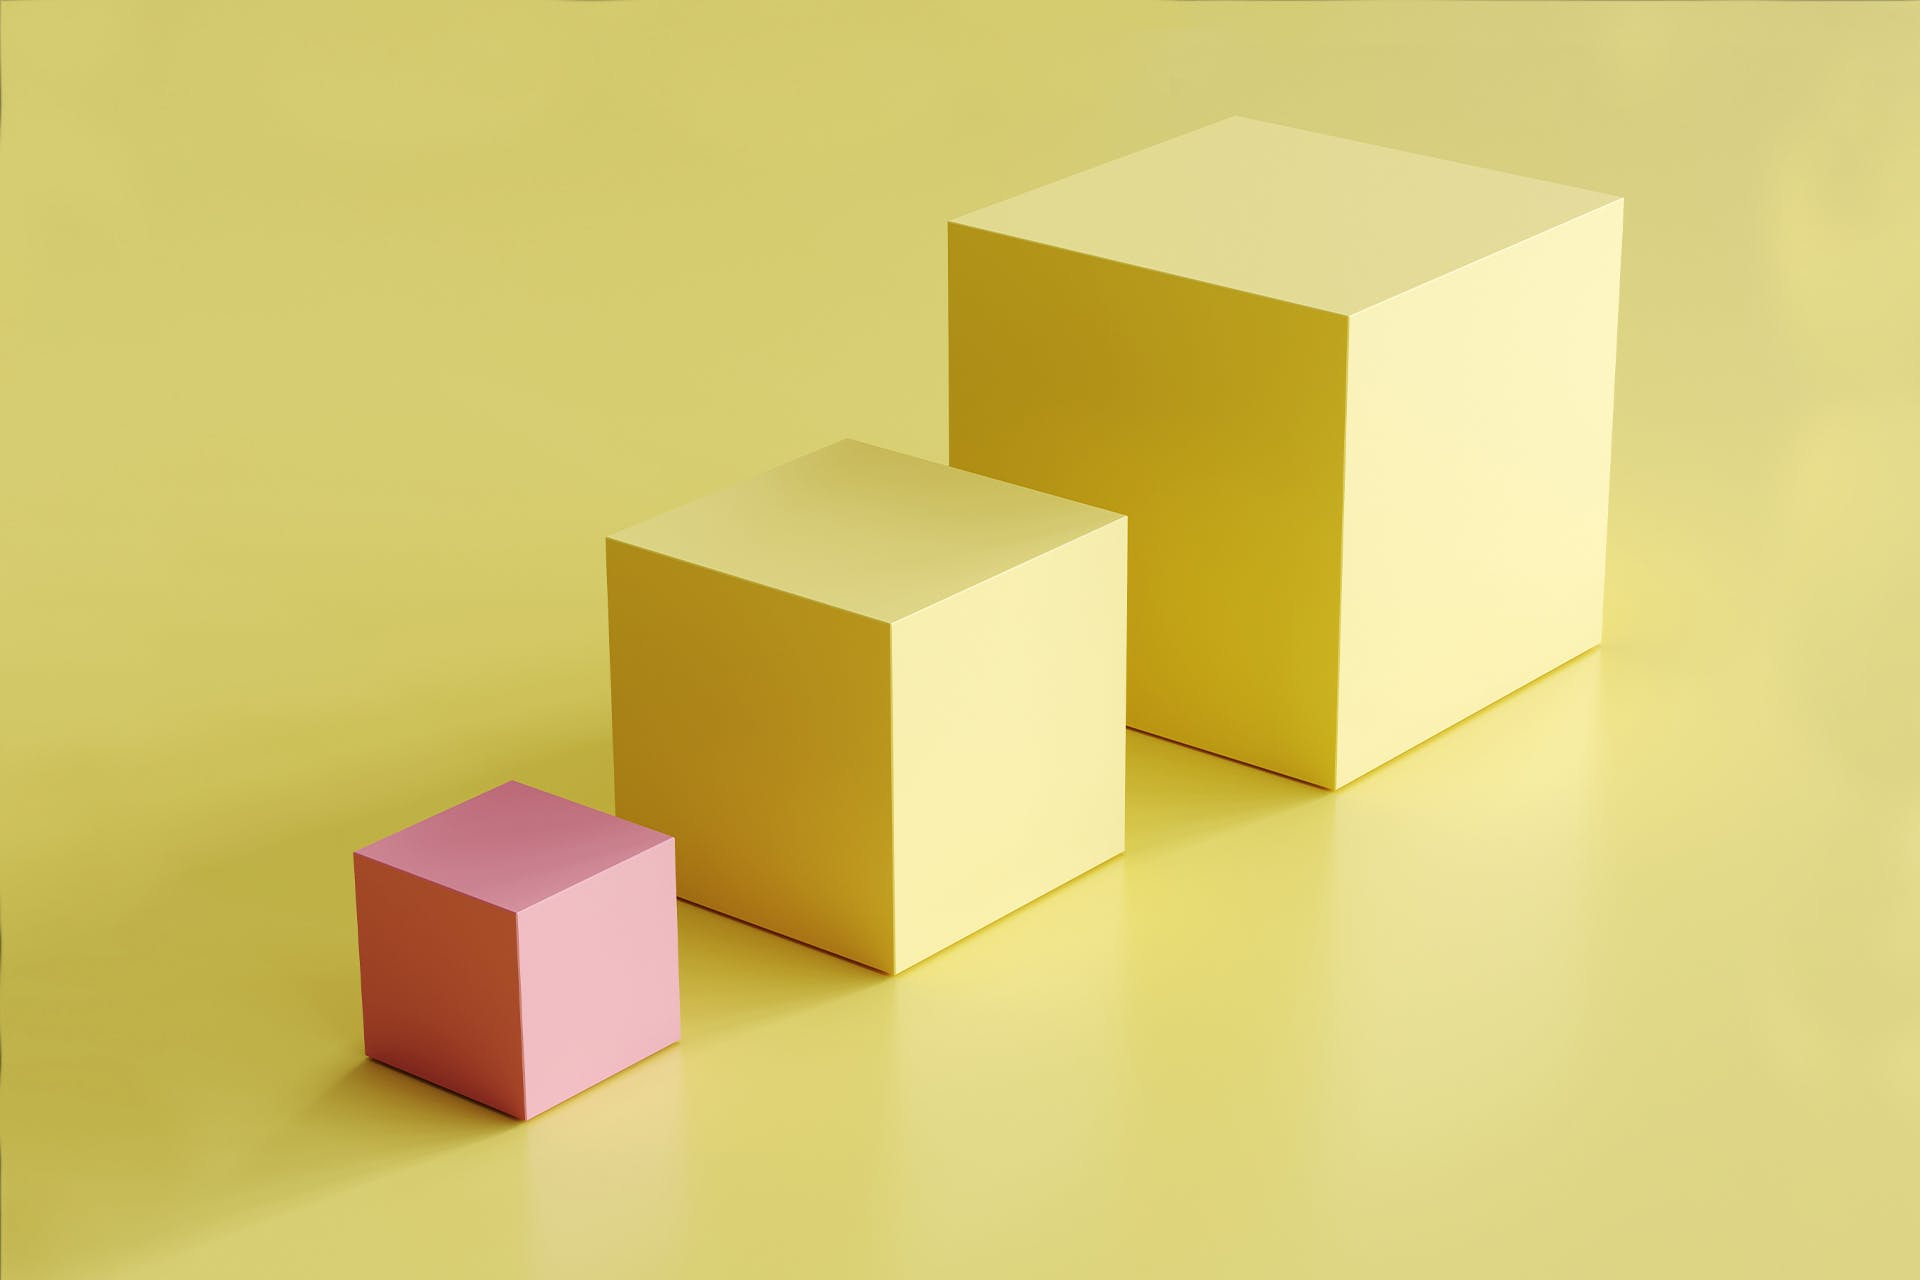 A set of blocks: two large yellow cubes and a smaller pink cube. The pink cube clearly stands out from the other yellow cubes, which makes this image the perfect fit for our blog on brand extensions and how to include them in your strategy.